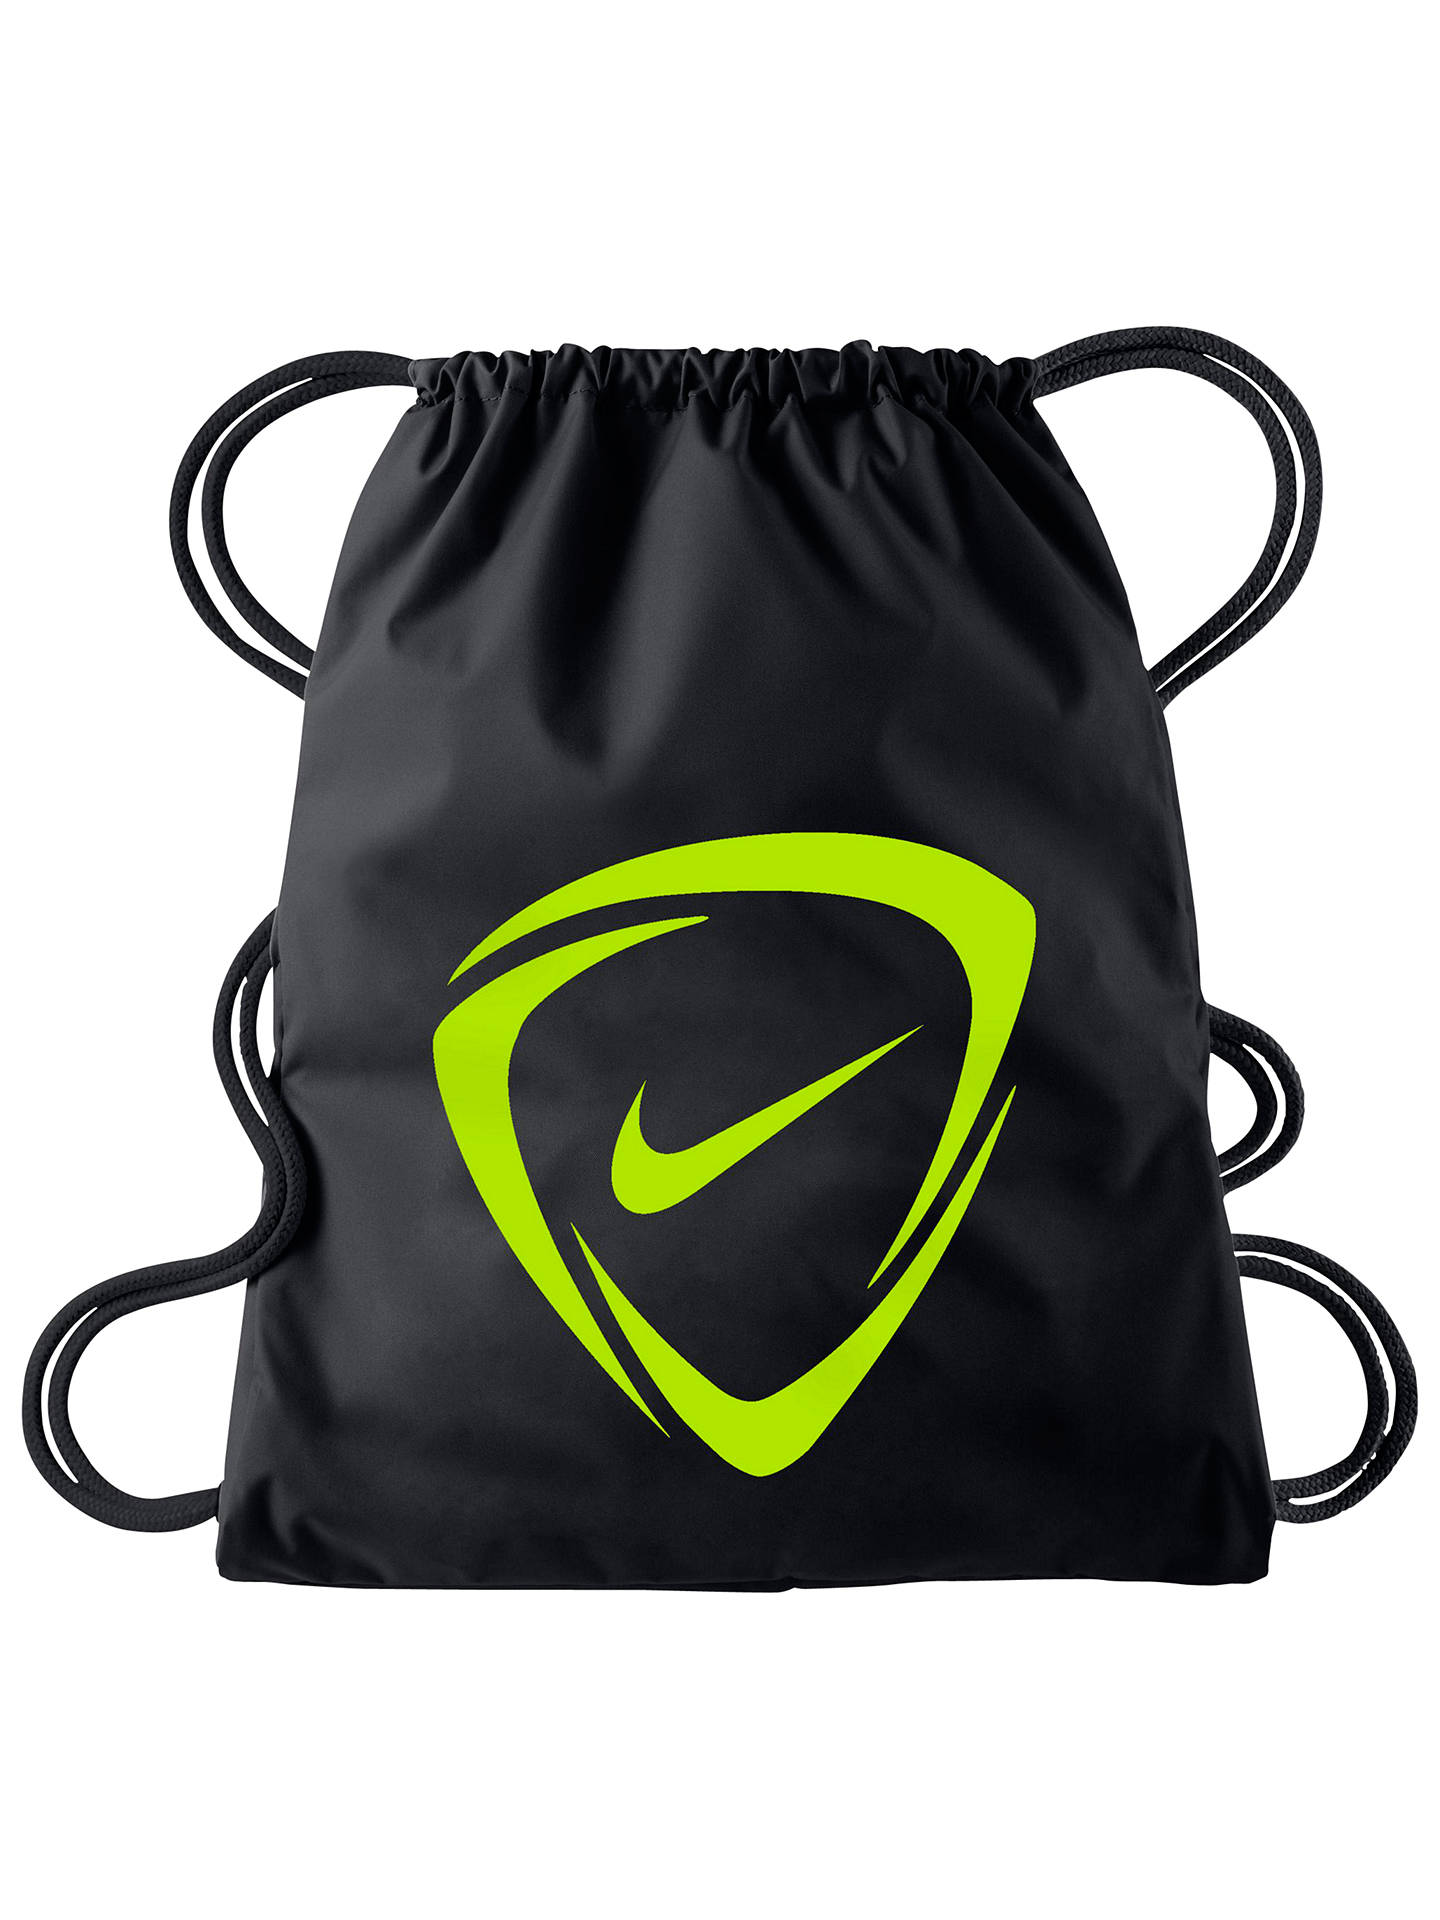 BuyNike Mercurial 2.0 Football Drawstring Bag, Black Online at  johnlewis.com ... 91ac6c01a3